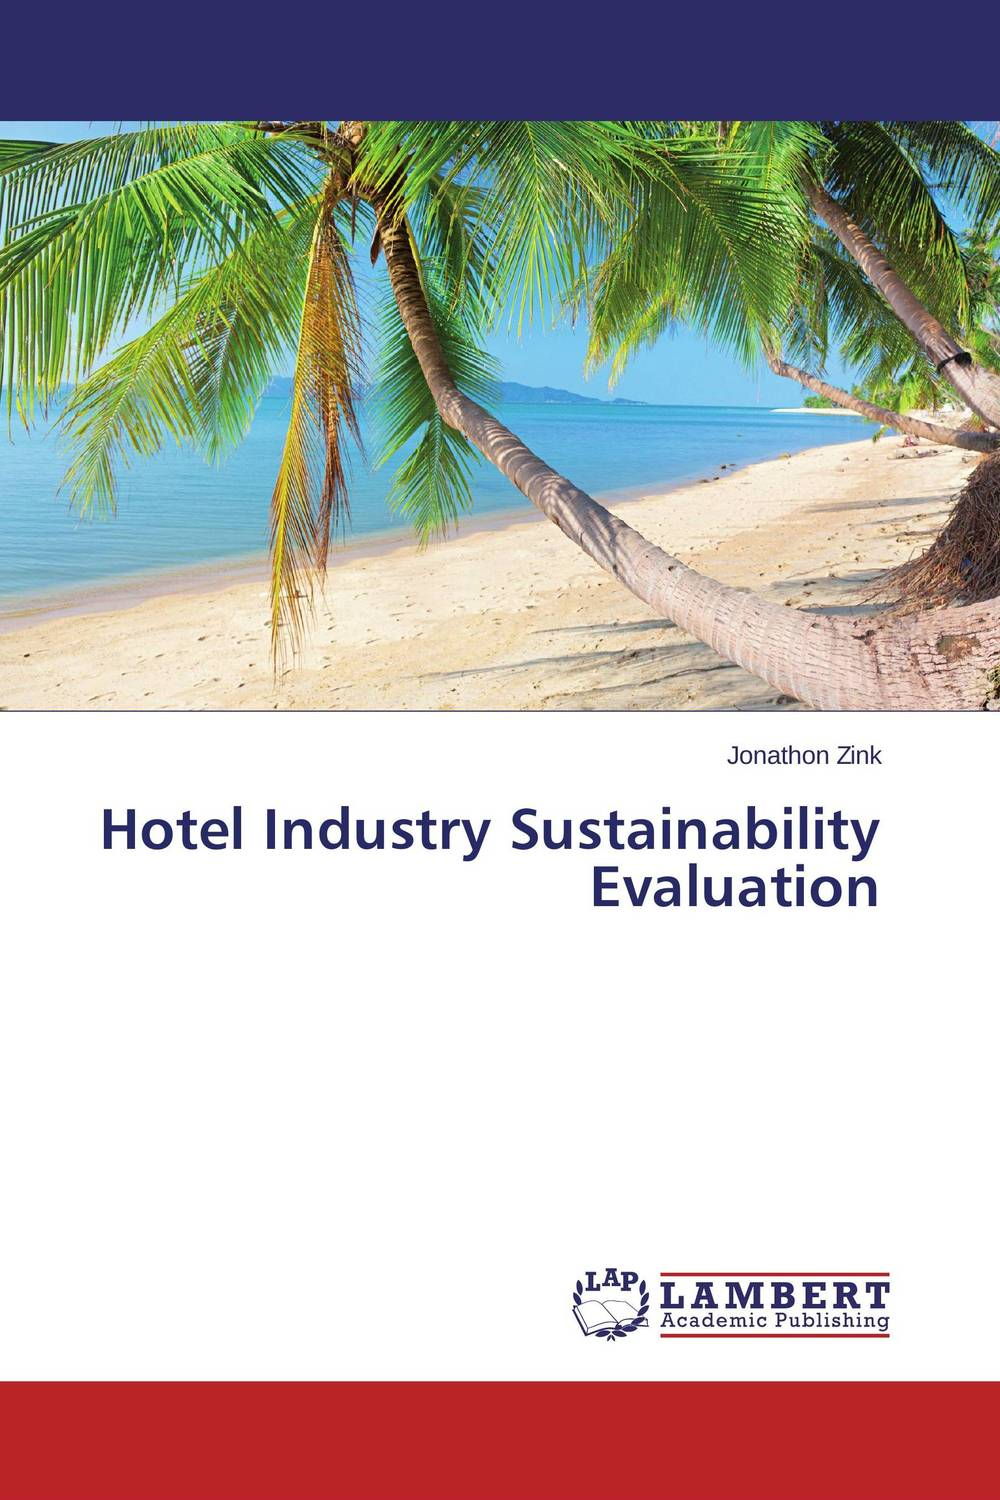 Hotel Industry Sustainability Evaluation